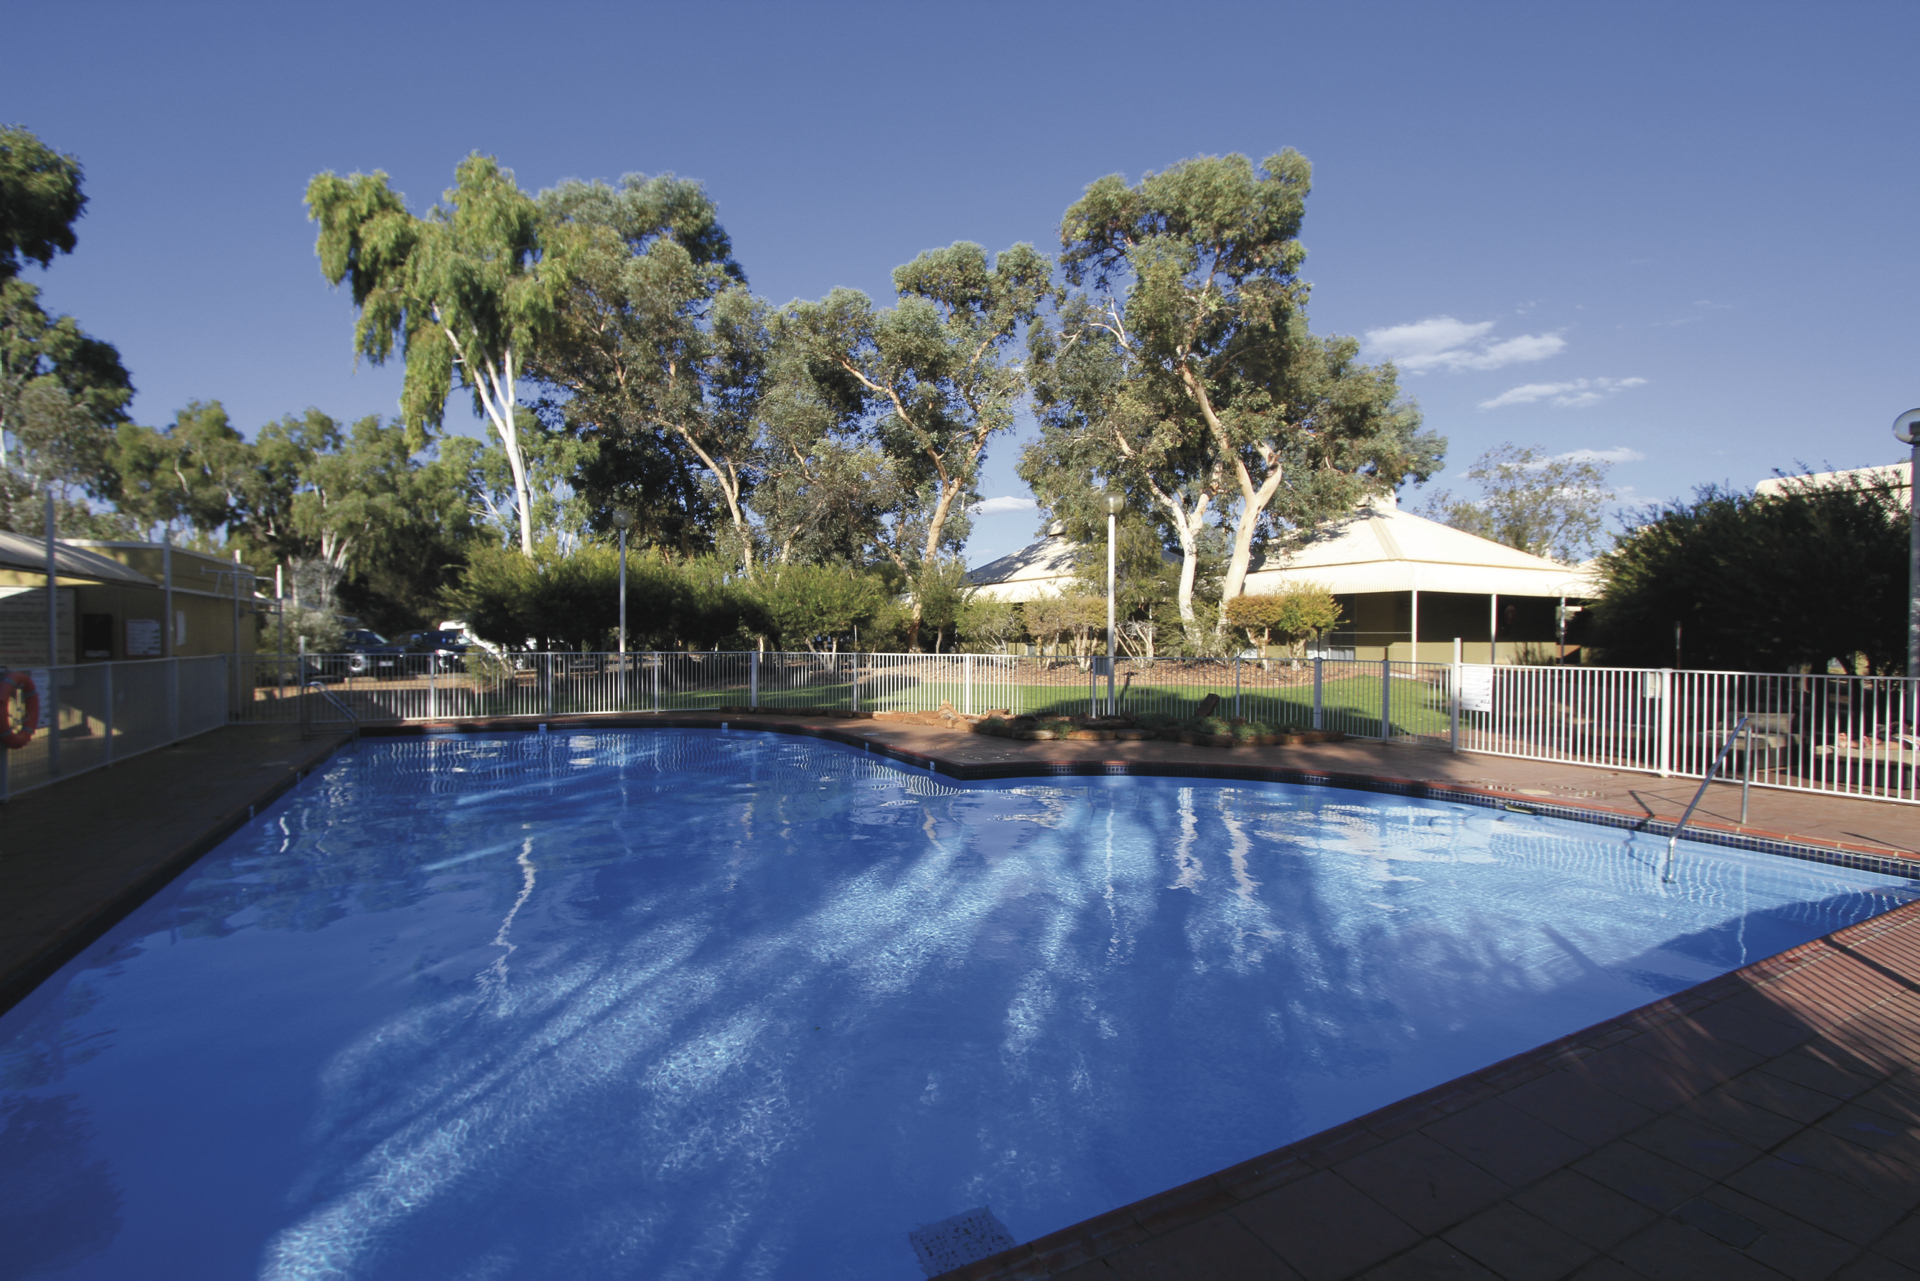 Outback Pioneer Hotel